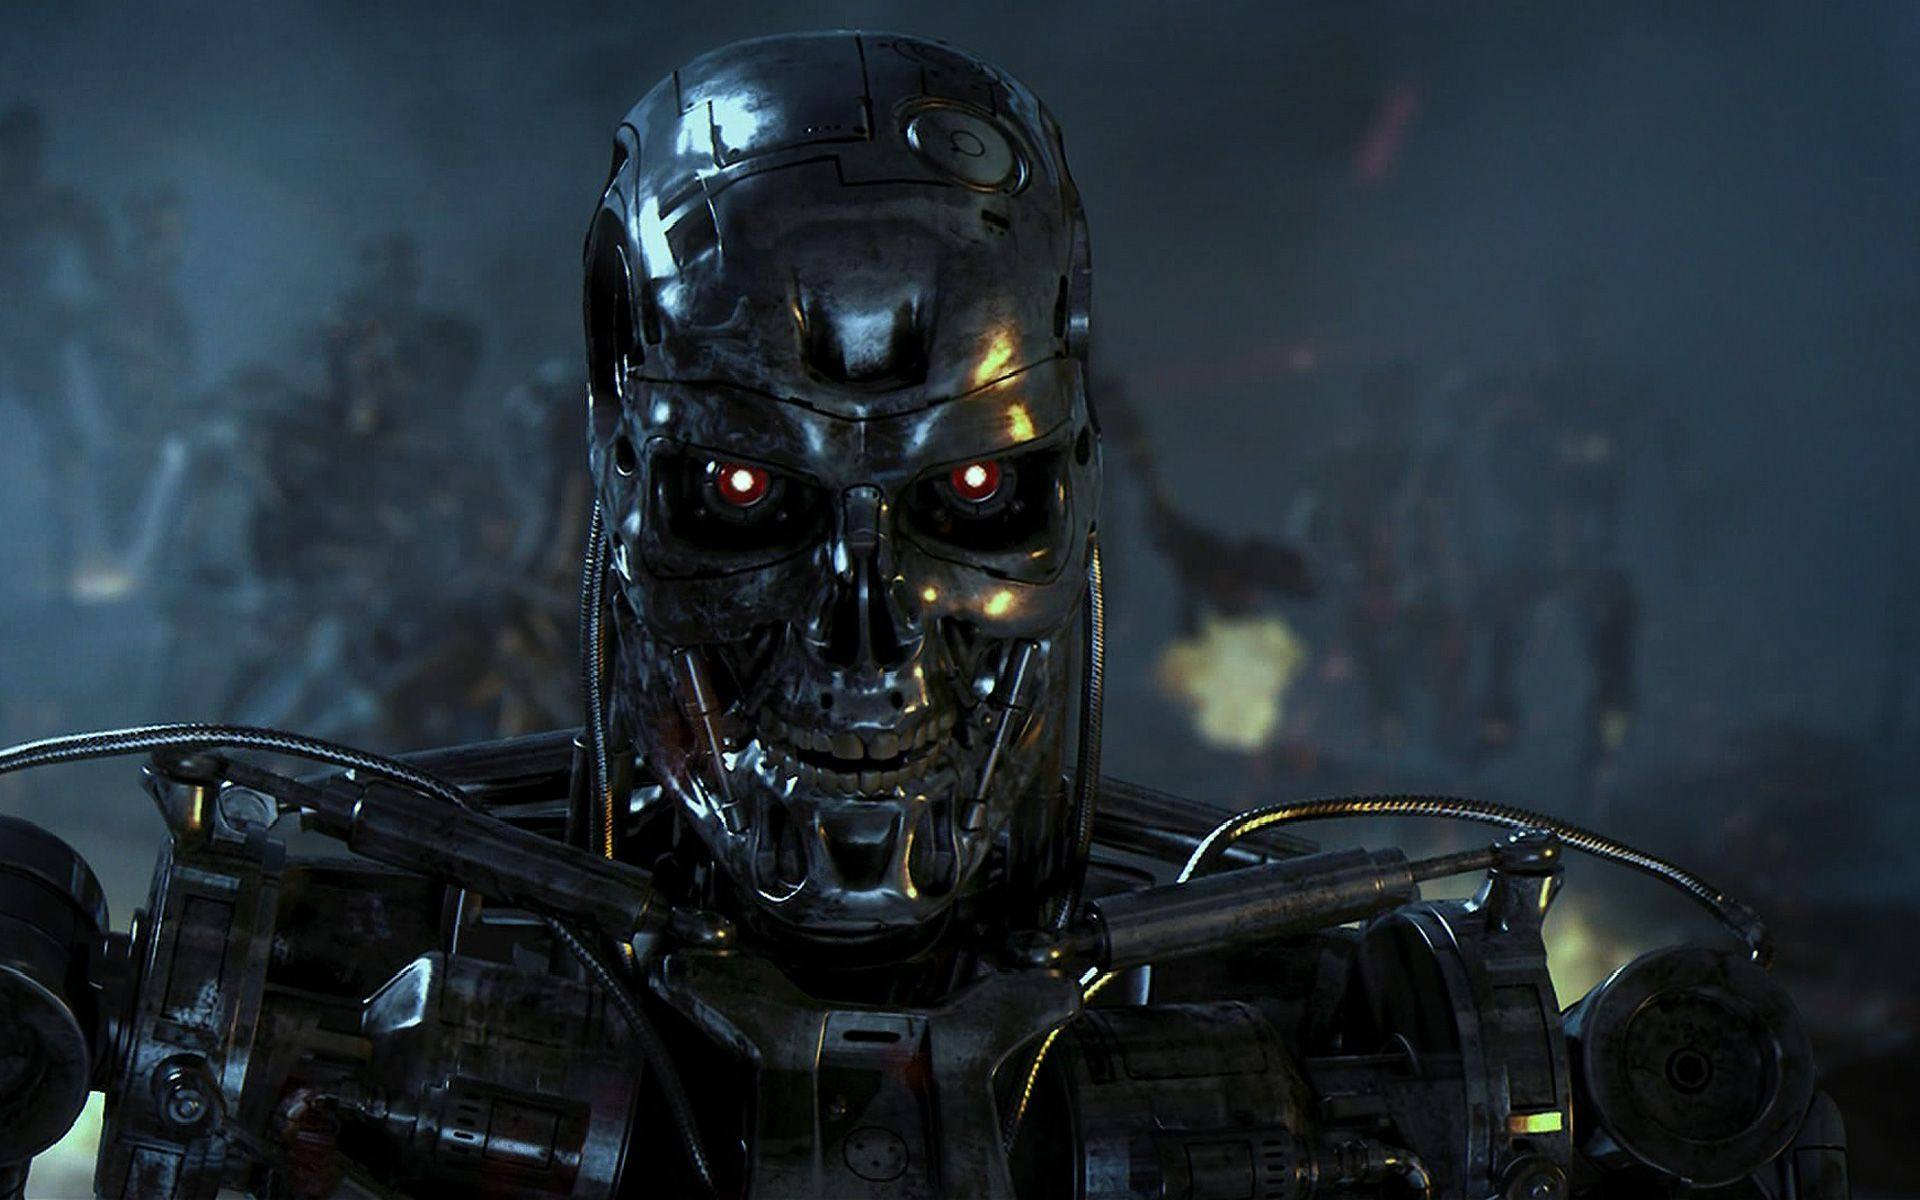 The Terminator: This is not the droid you're looking for (Image credit:Carolco Pictures/Skydance)